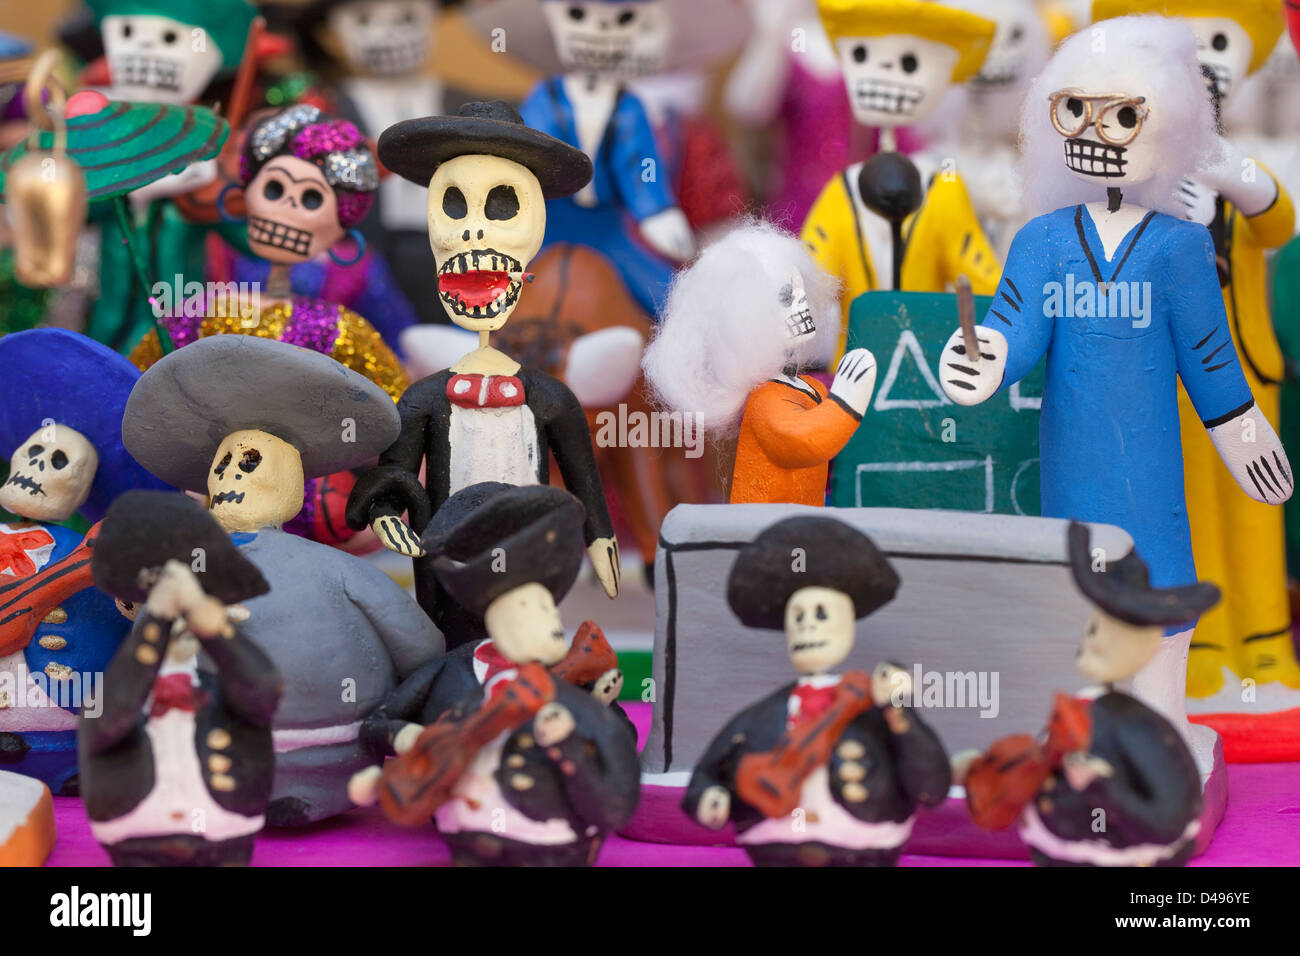 Small clay skeleton figurines on display for Day of the Dead festival, Oaxaca, Mexico. - Stock Image